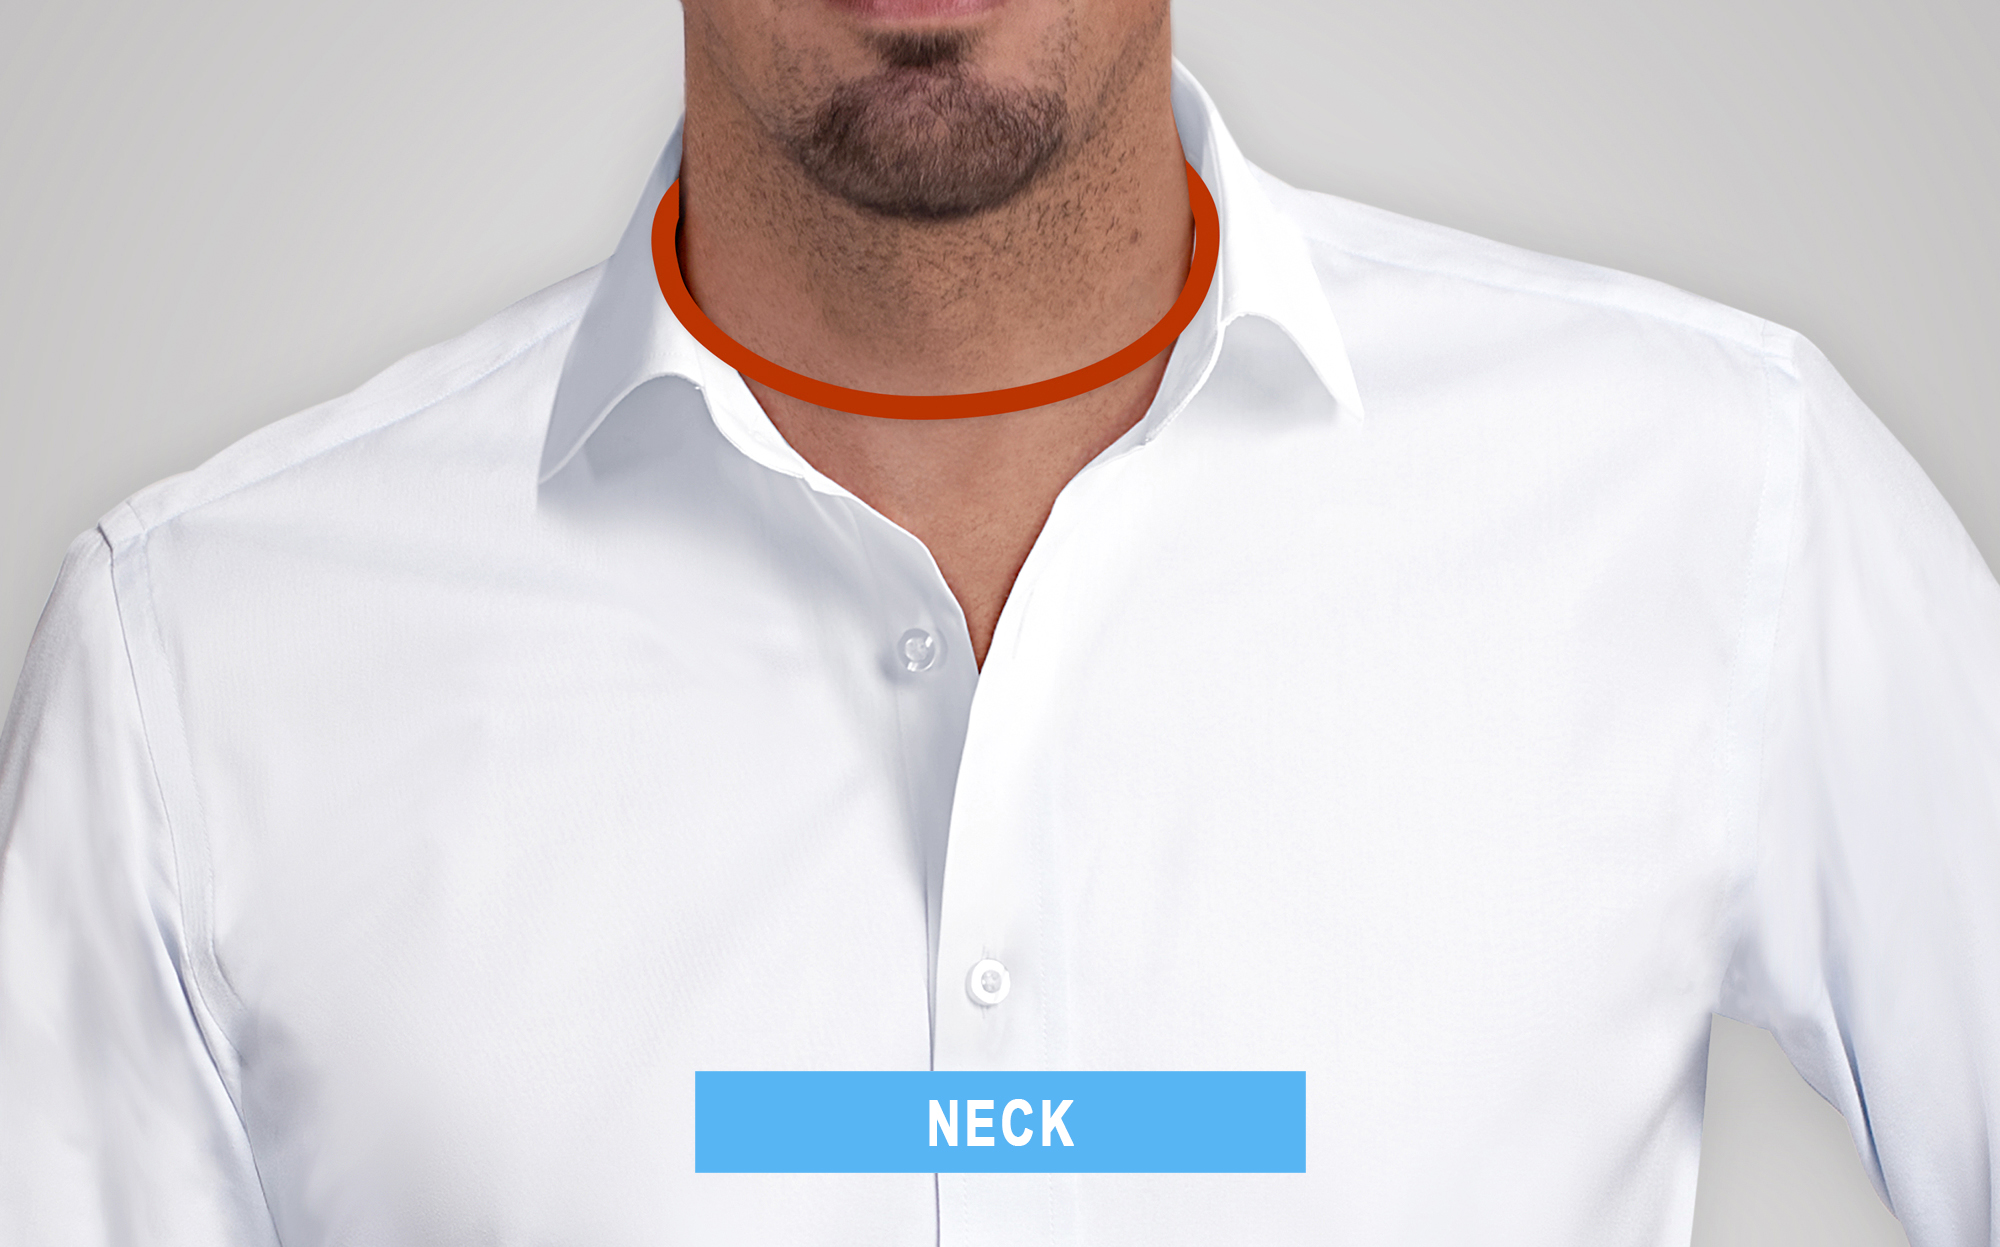 how to measure neck circumference